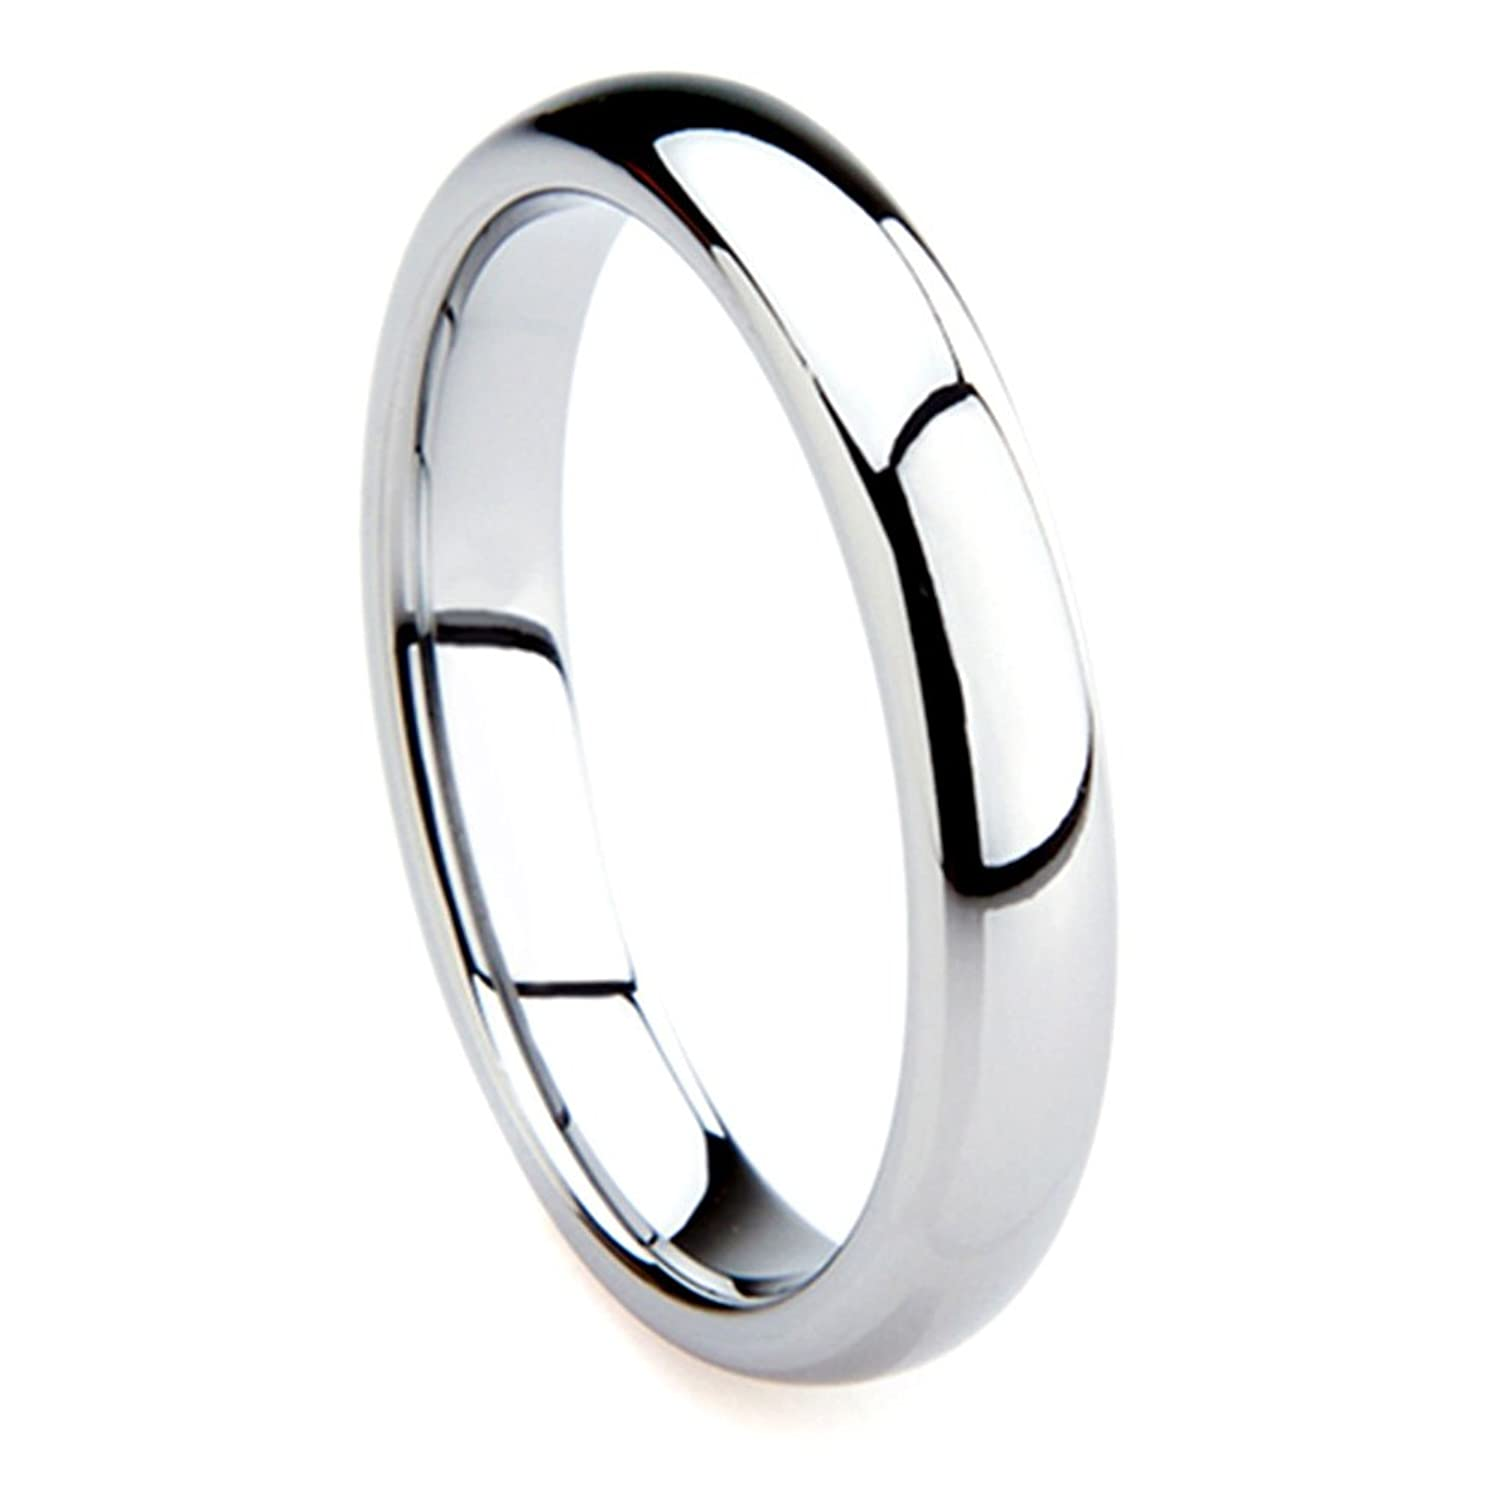 Tungsten Metal 4MM Plain Dome Wedding Band Ring Ring Size 4 12